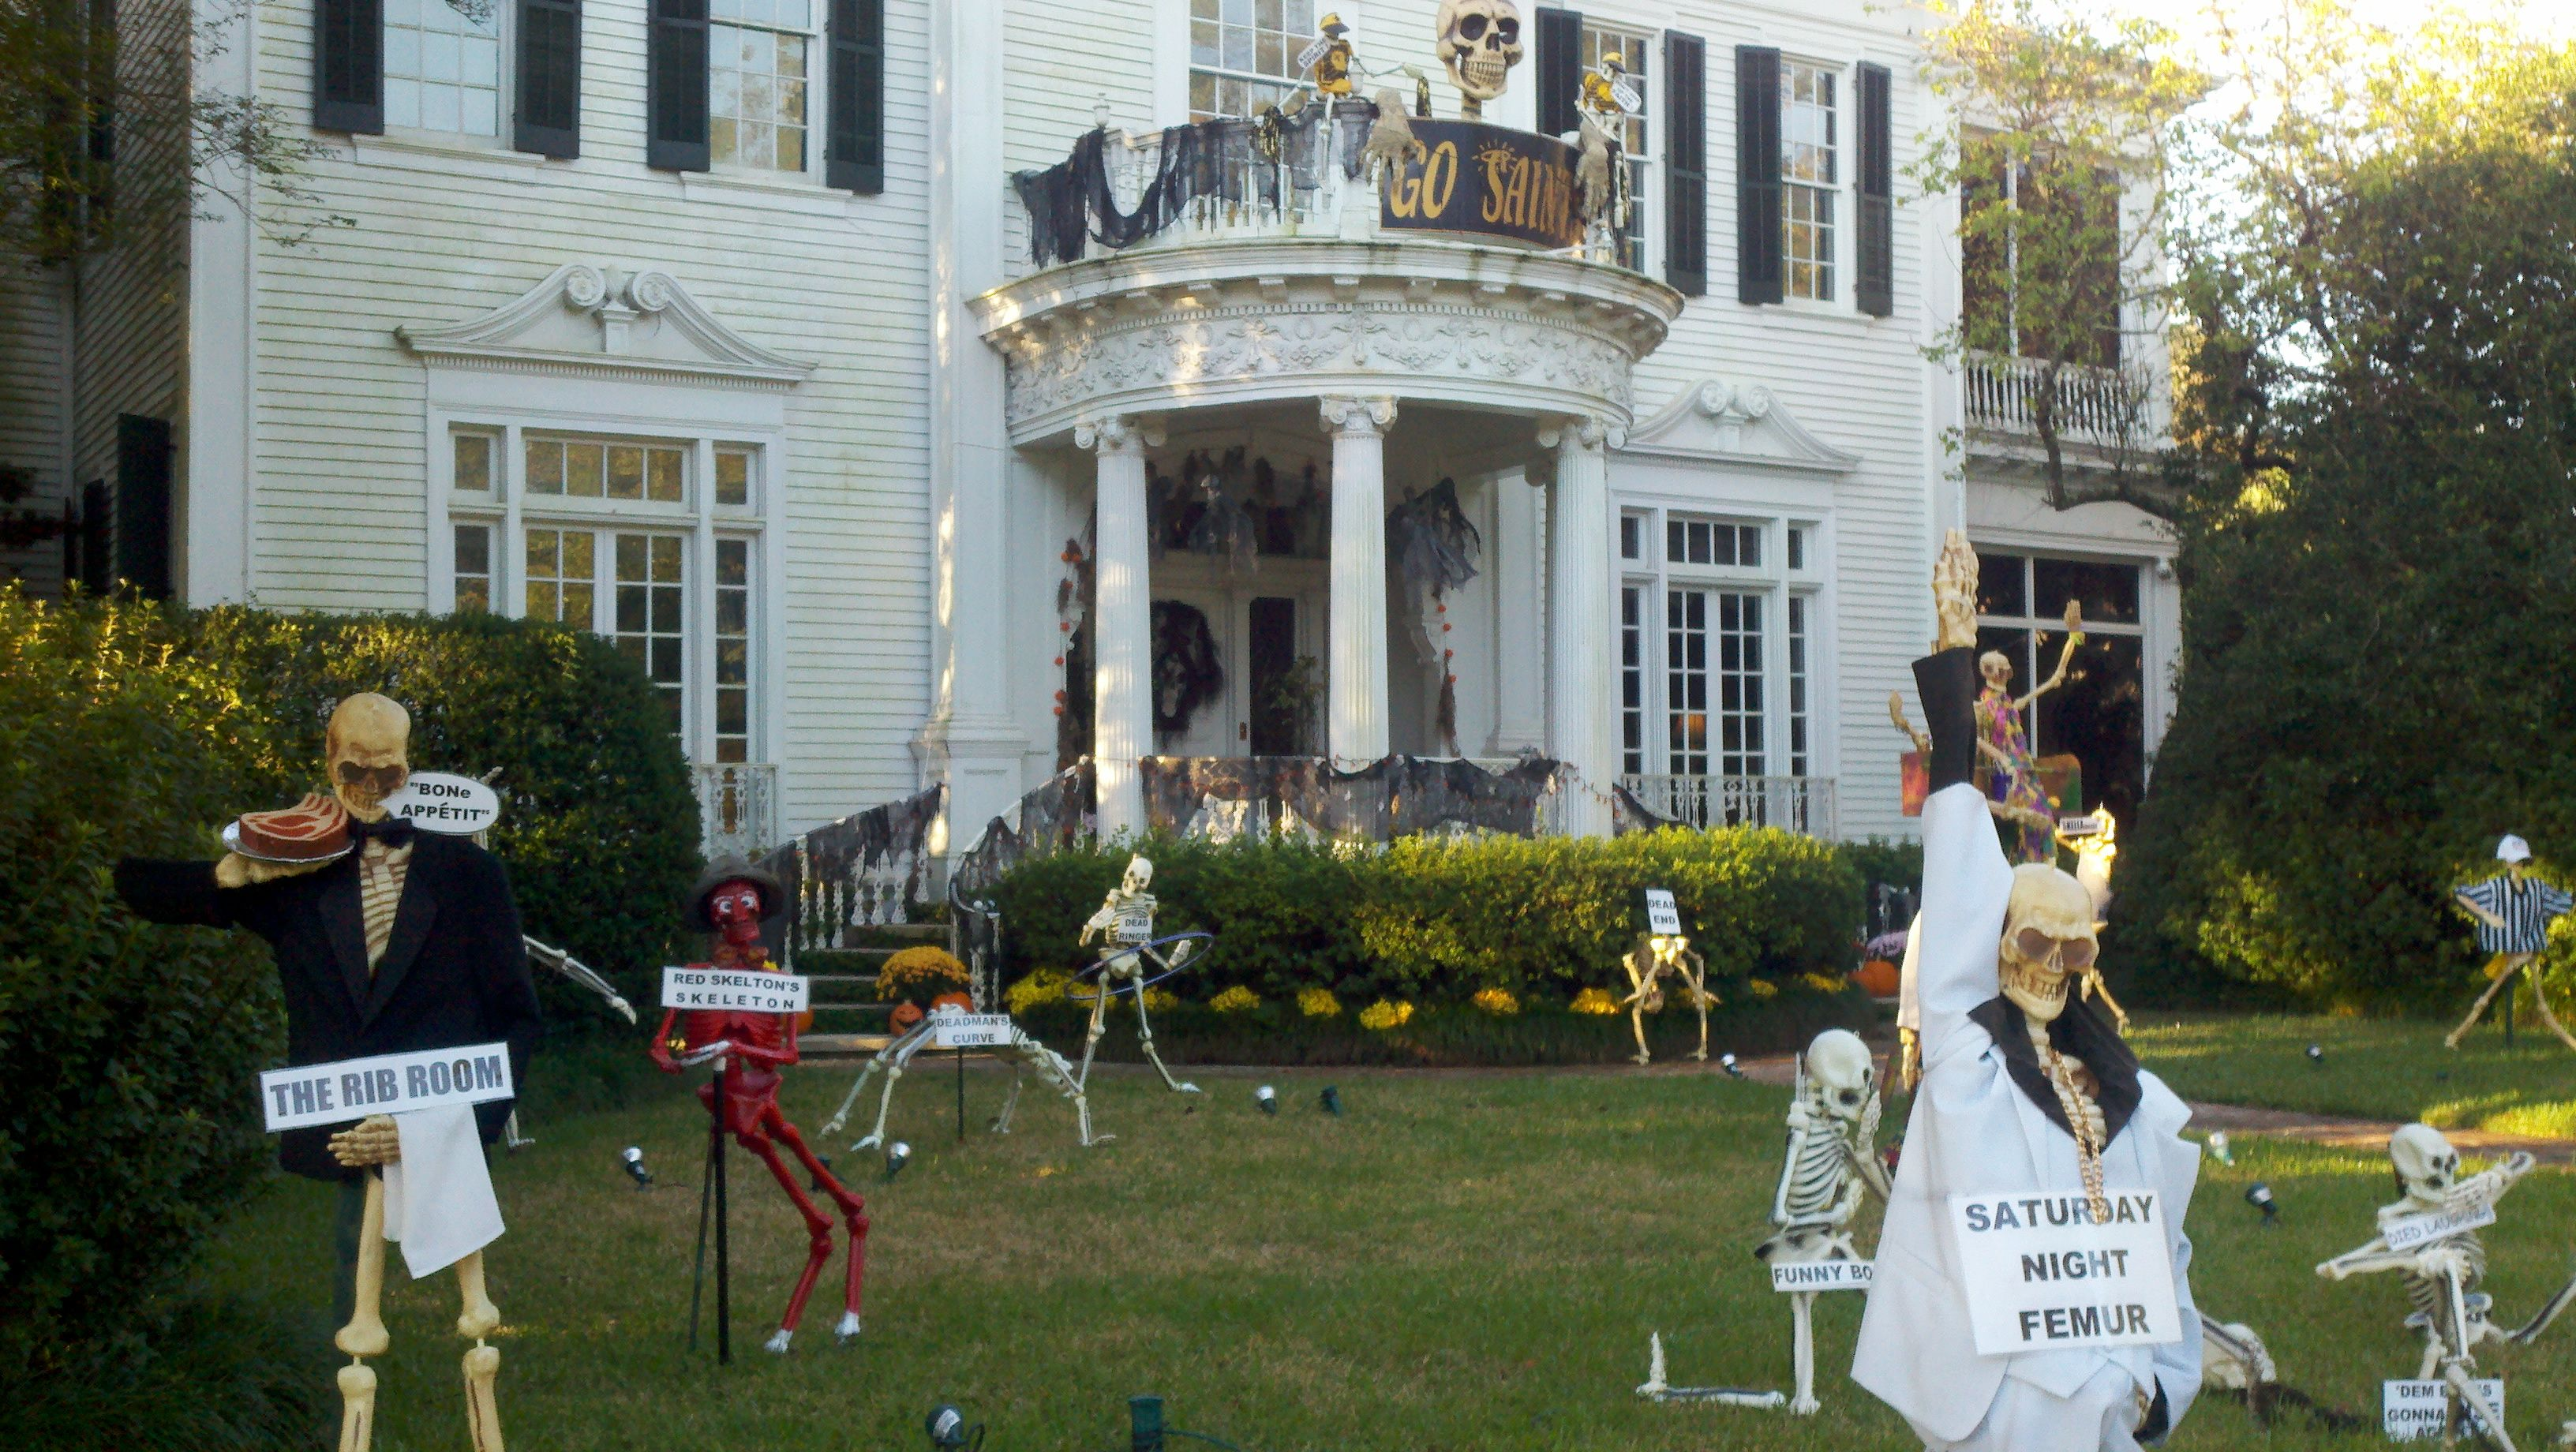 Just for Halloween: Dem Bones at St Charles Avenue and State Street in New Orleans!